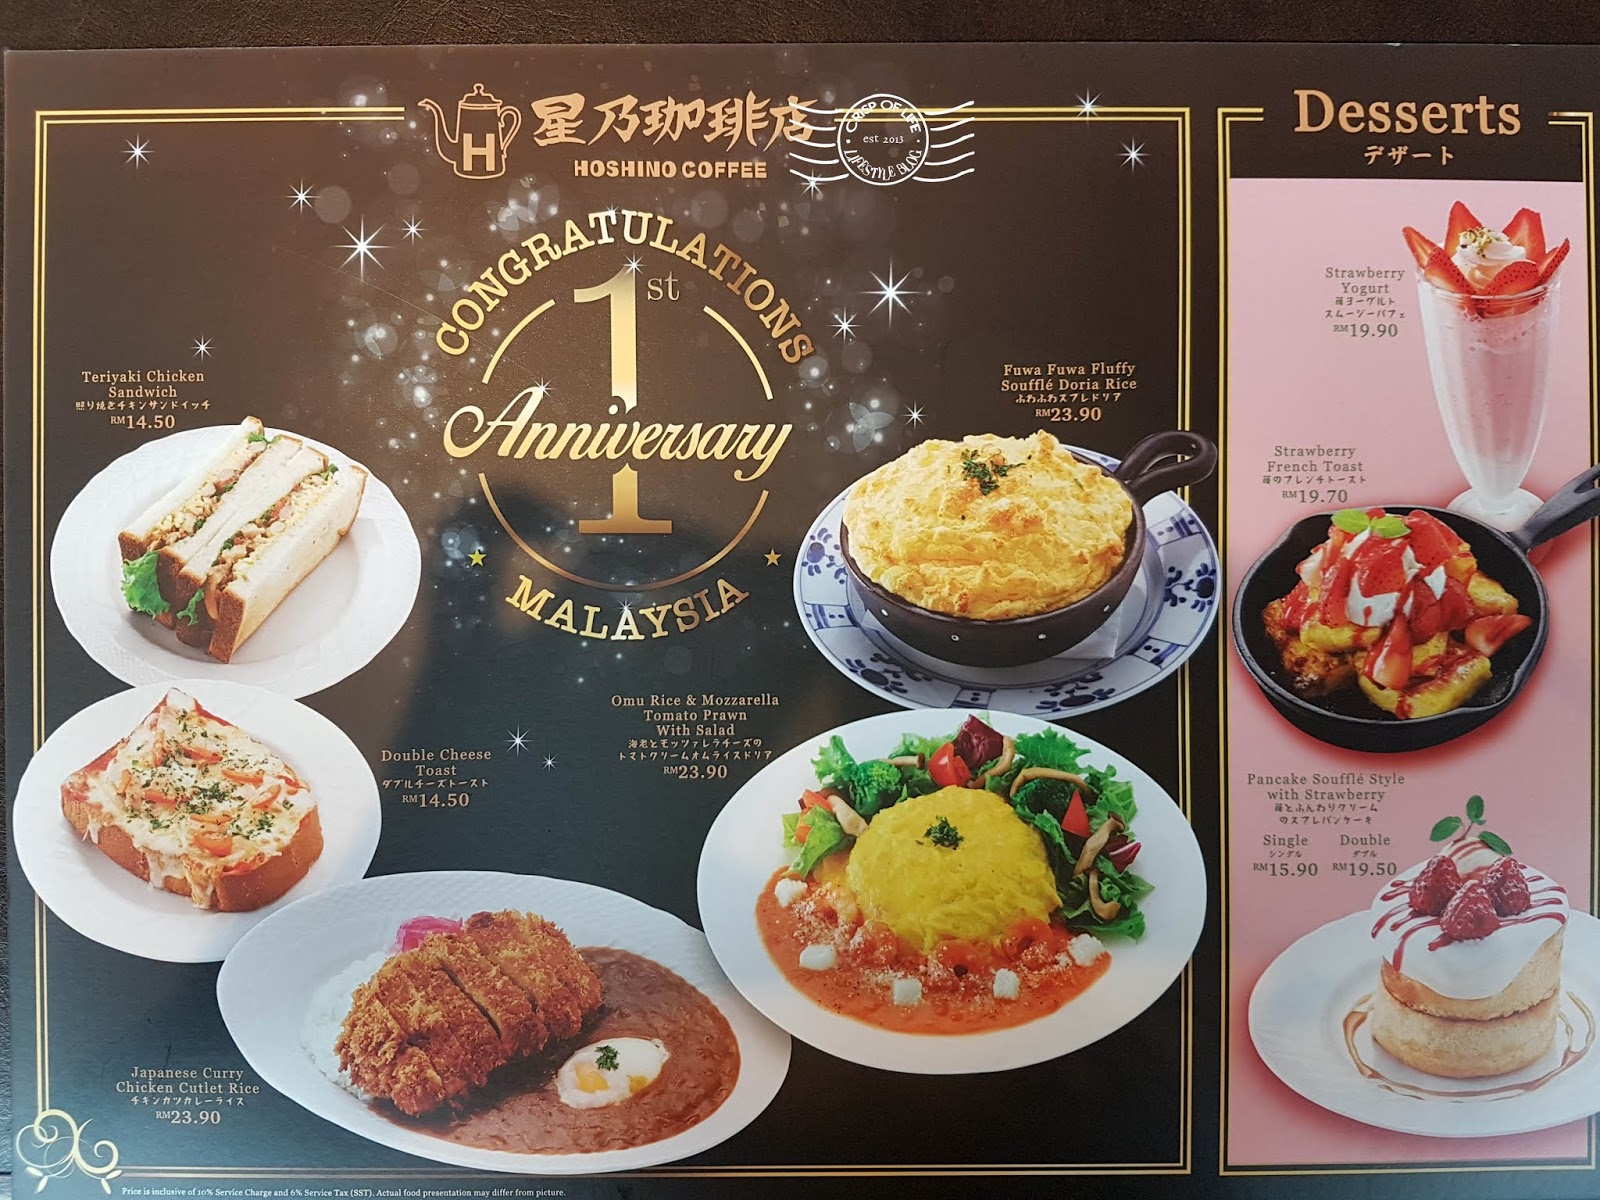 Hoshino Coffee 1st Anniversary Limited Time Menu